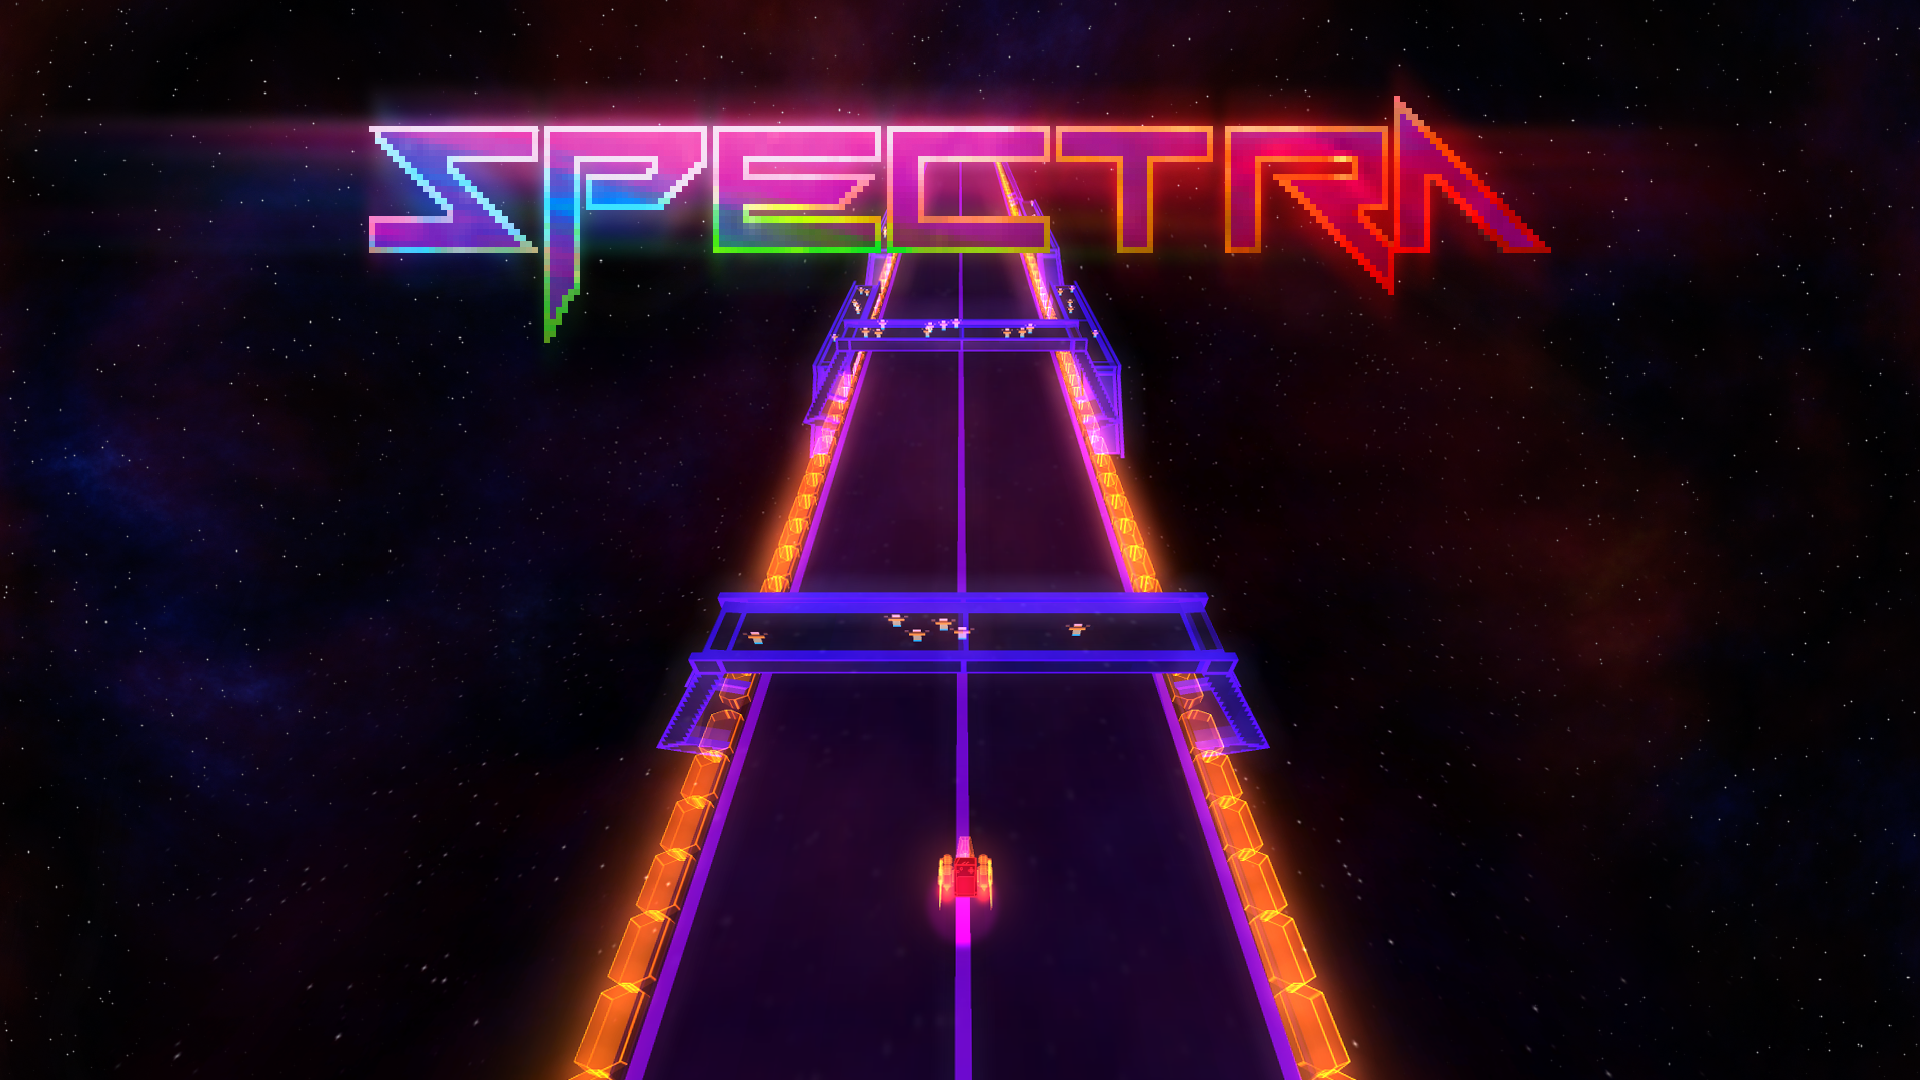 Review: Spectra